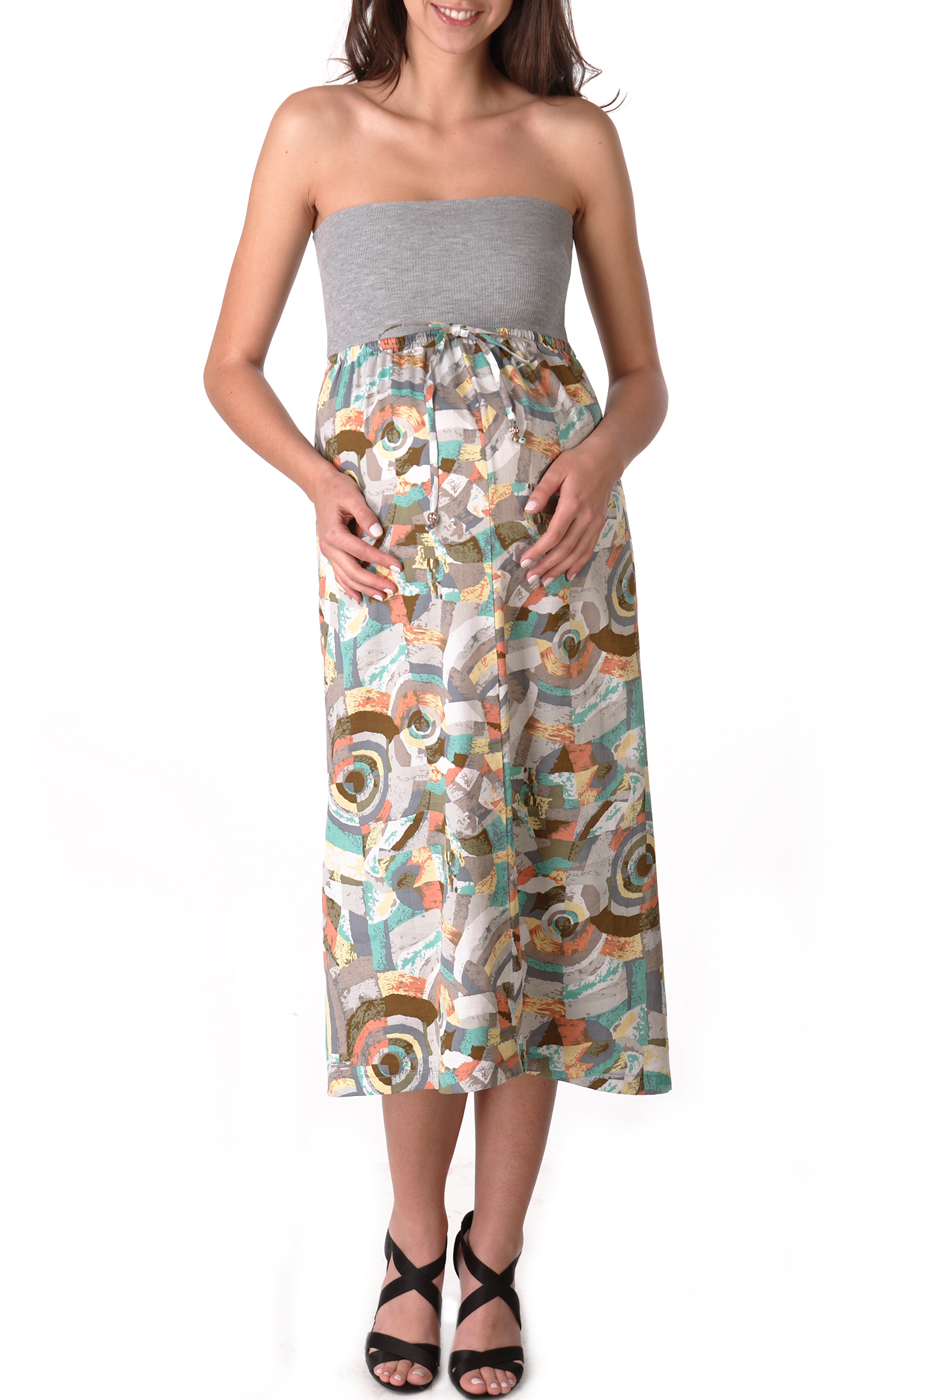 Trendy Maternity Clothes. Here you will find maternity clothes that will last through your pregnancy and beyond. From cool maternity clothing for pregnant fashionistas to hip baby clothes for your bundle of joy, we carry everything for mom-to-be and baby!